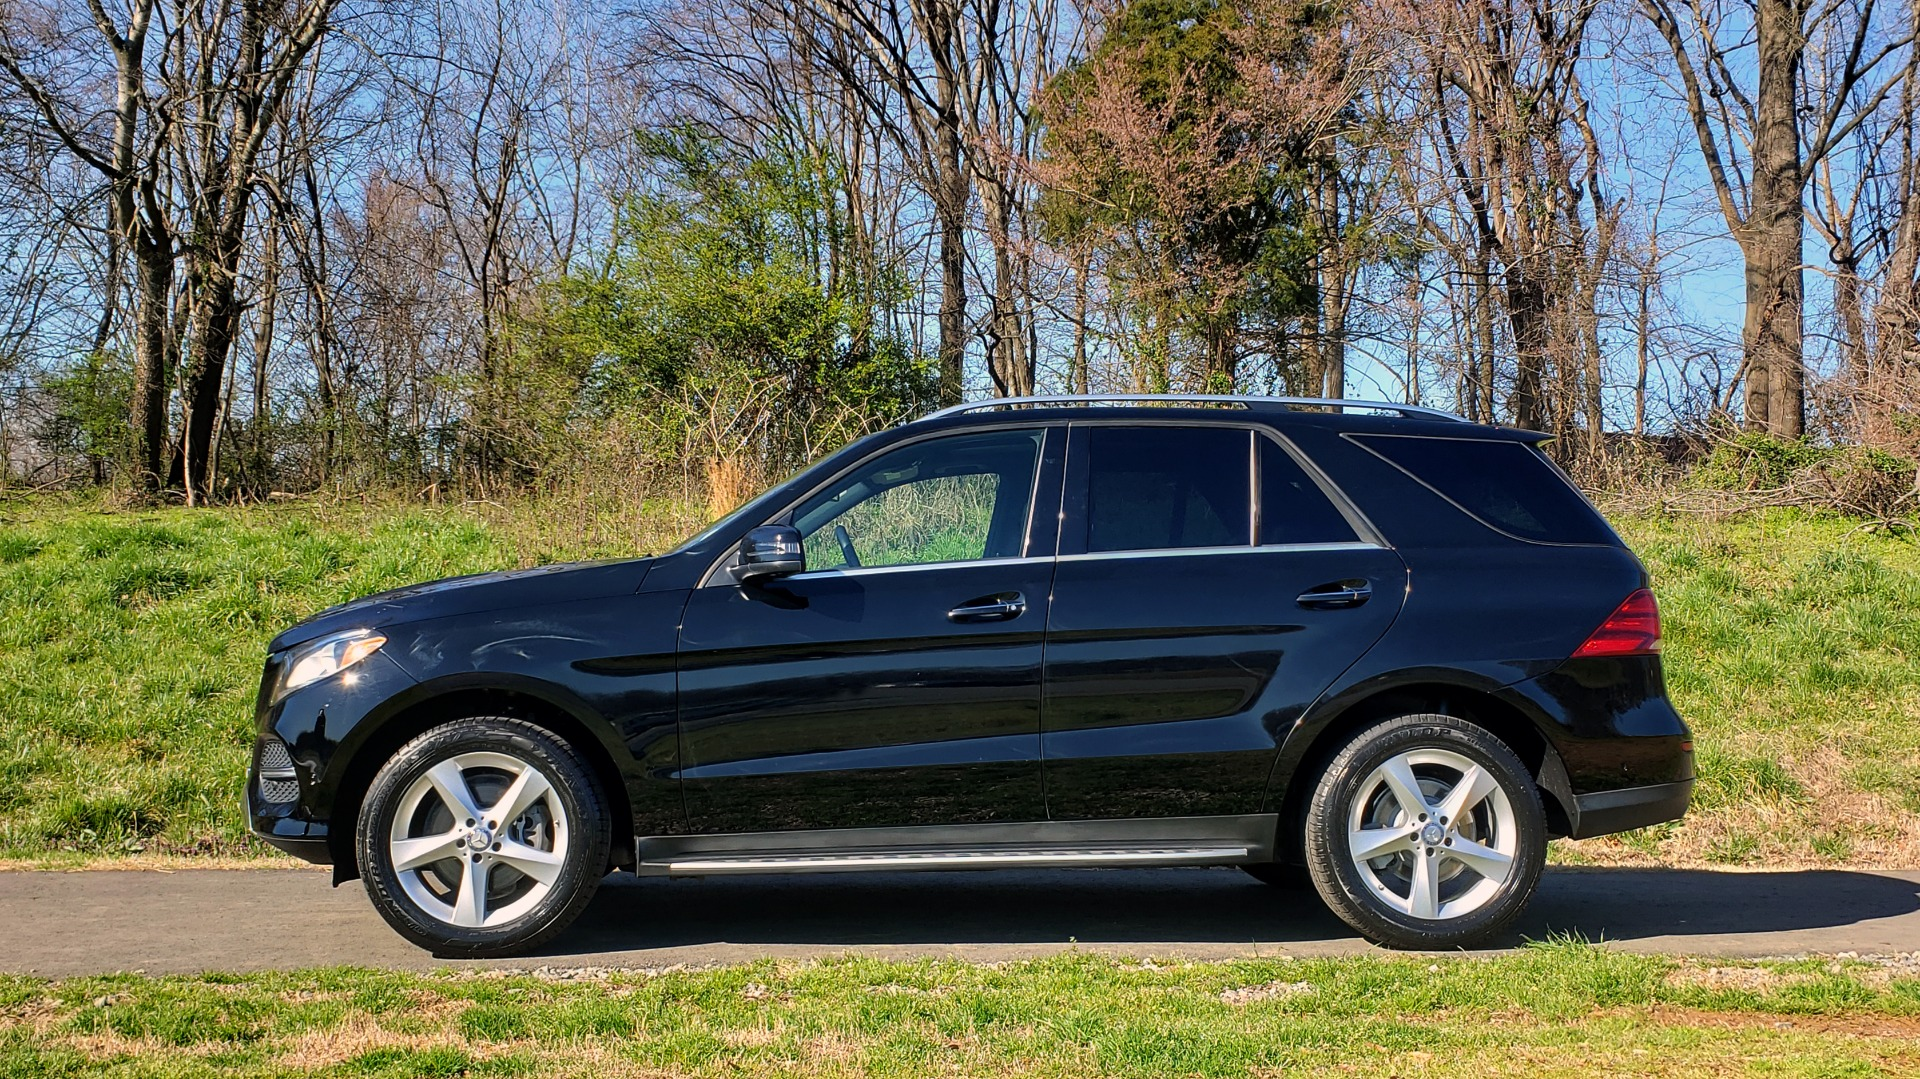 Used 2017 Mercedes-Benz GLE 350 4MATIC PREMIUM / NAV / SUNROOF / REARVIEW / PARK ASST for sale Sold at Formula Imports in Charlotte NC 28227 2